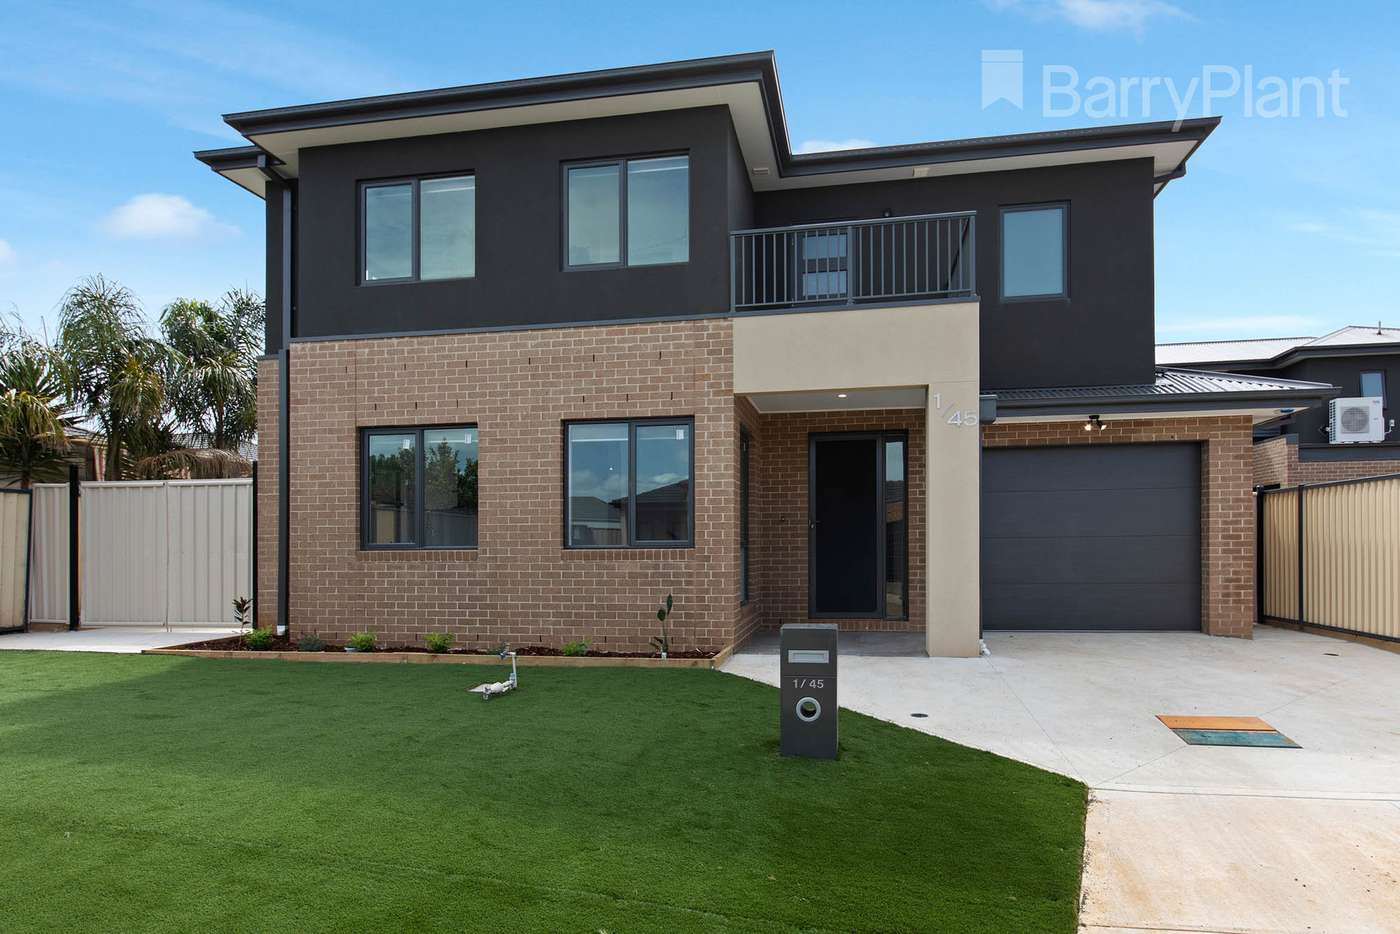 Main view of Homely house listing, 1/45 Katrina Drive, Burnside Heights VIC 3023